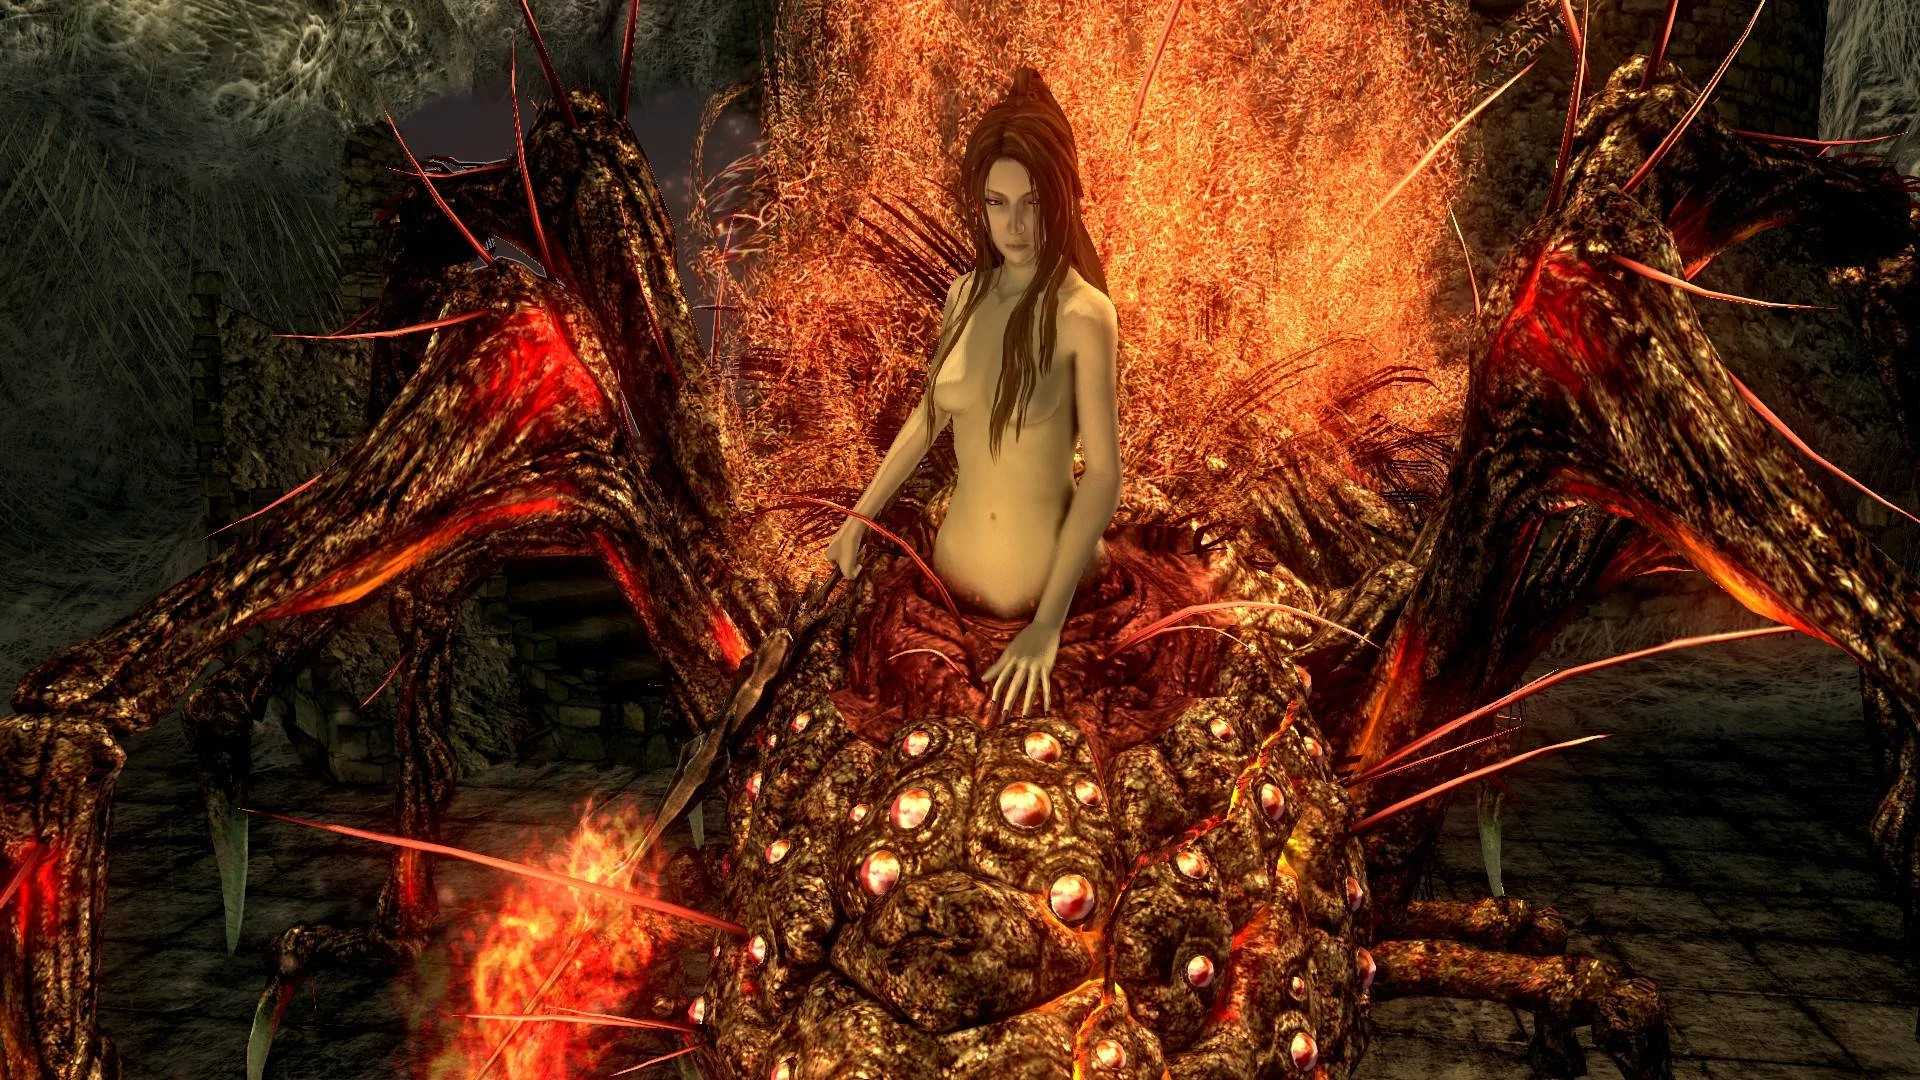 Dark Souls Chaos Witch Quelaag boss intro